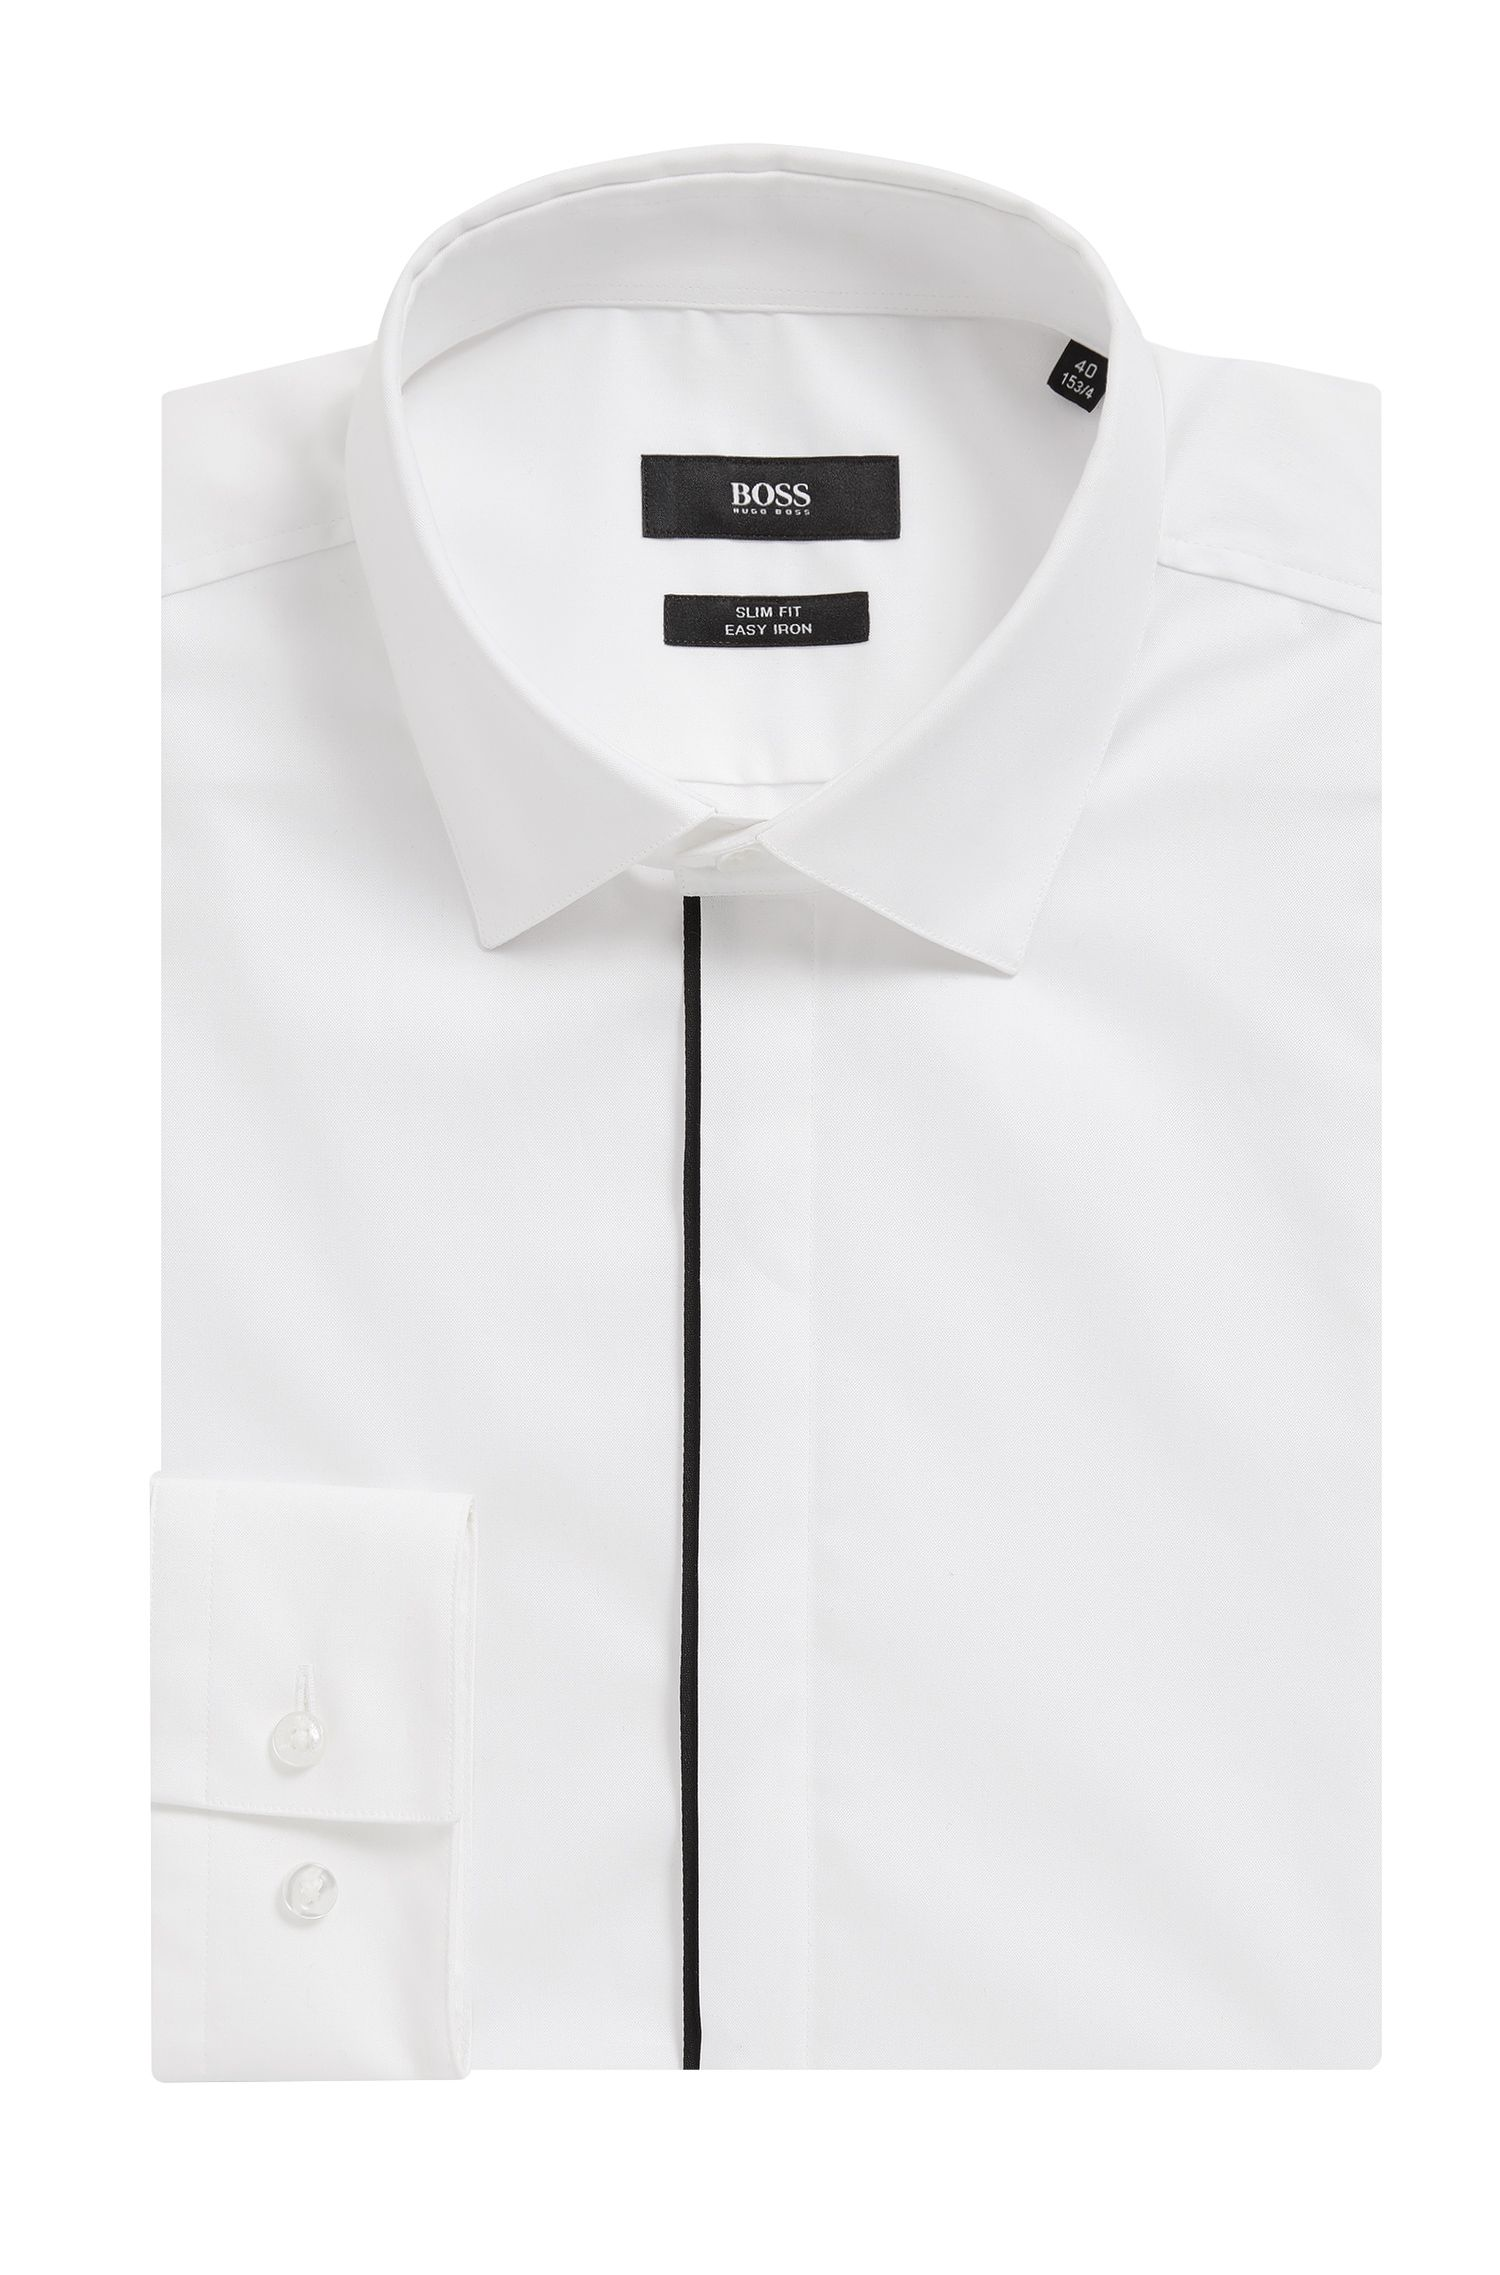 Piped Cotton Dress Shirt, Slim Fit | Jamis, White